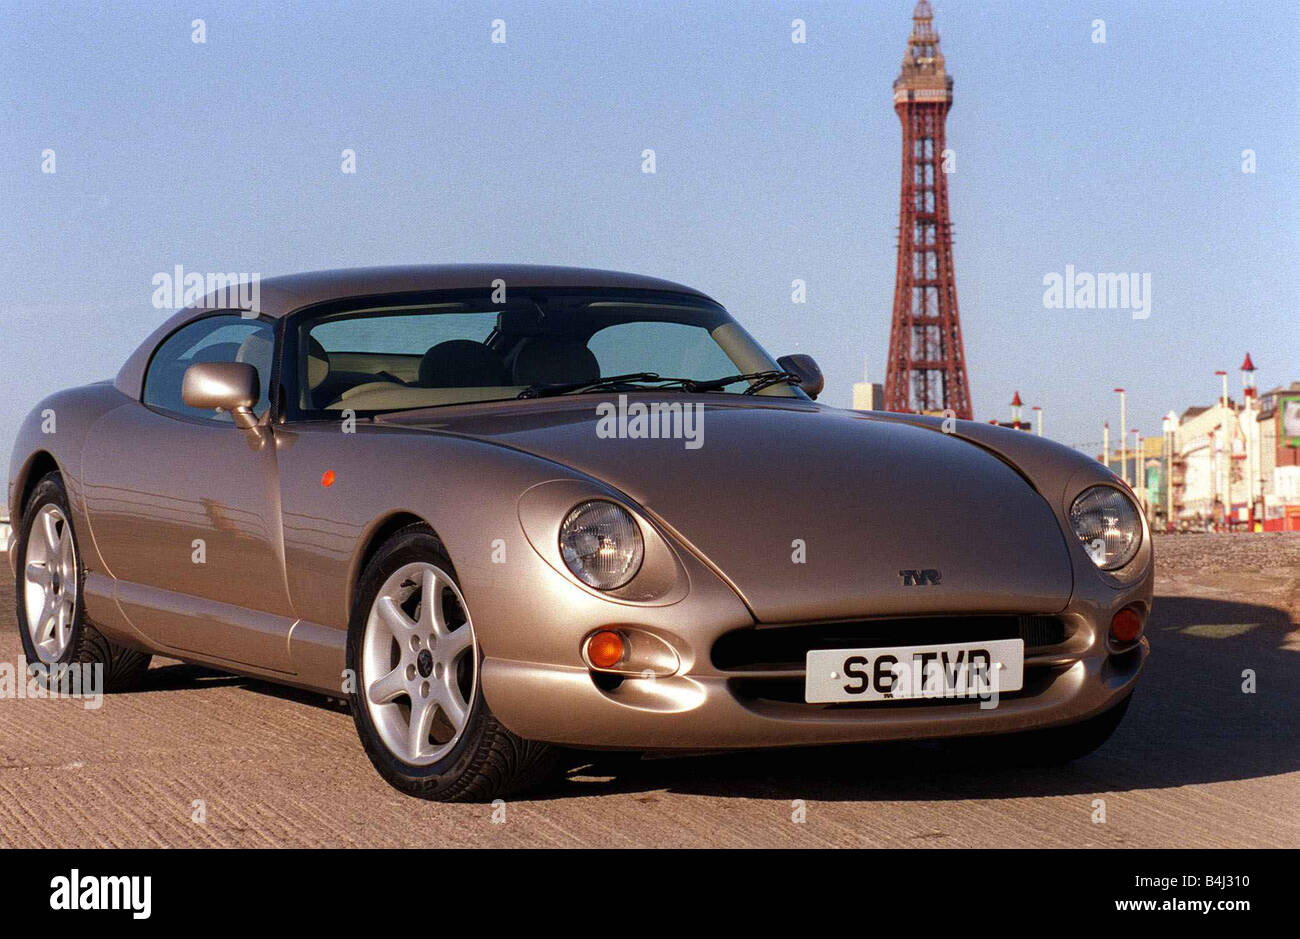 Tvr Car Stock Photos Images Alamy Remote Starter February 1999 Road Record Speed Six In Blackpool Tower Background